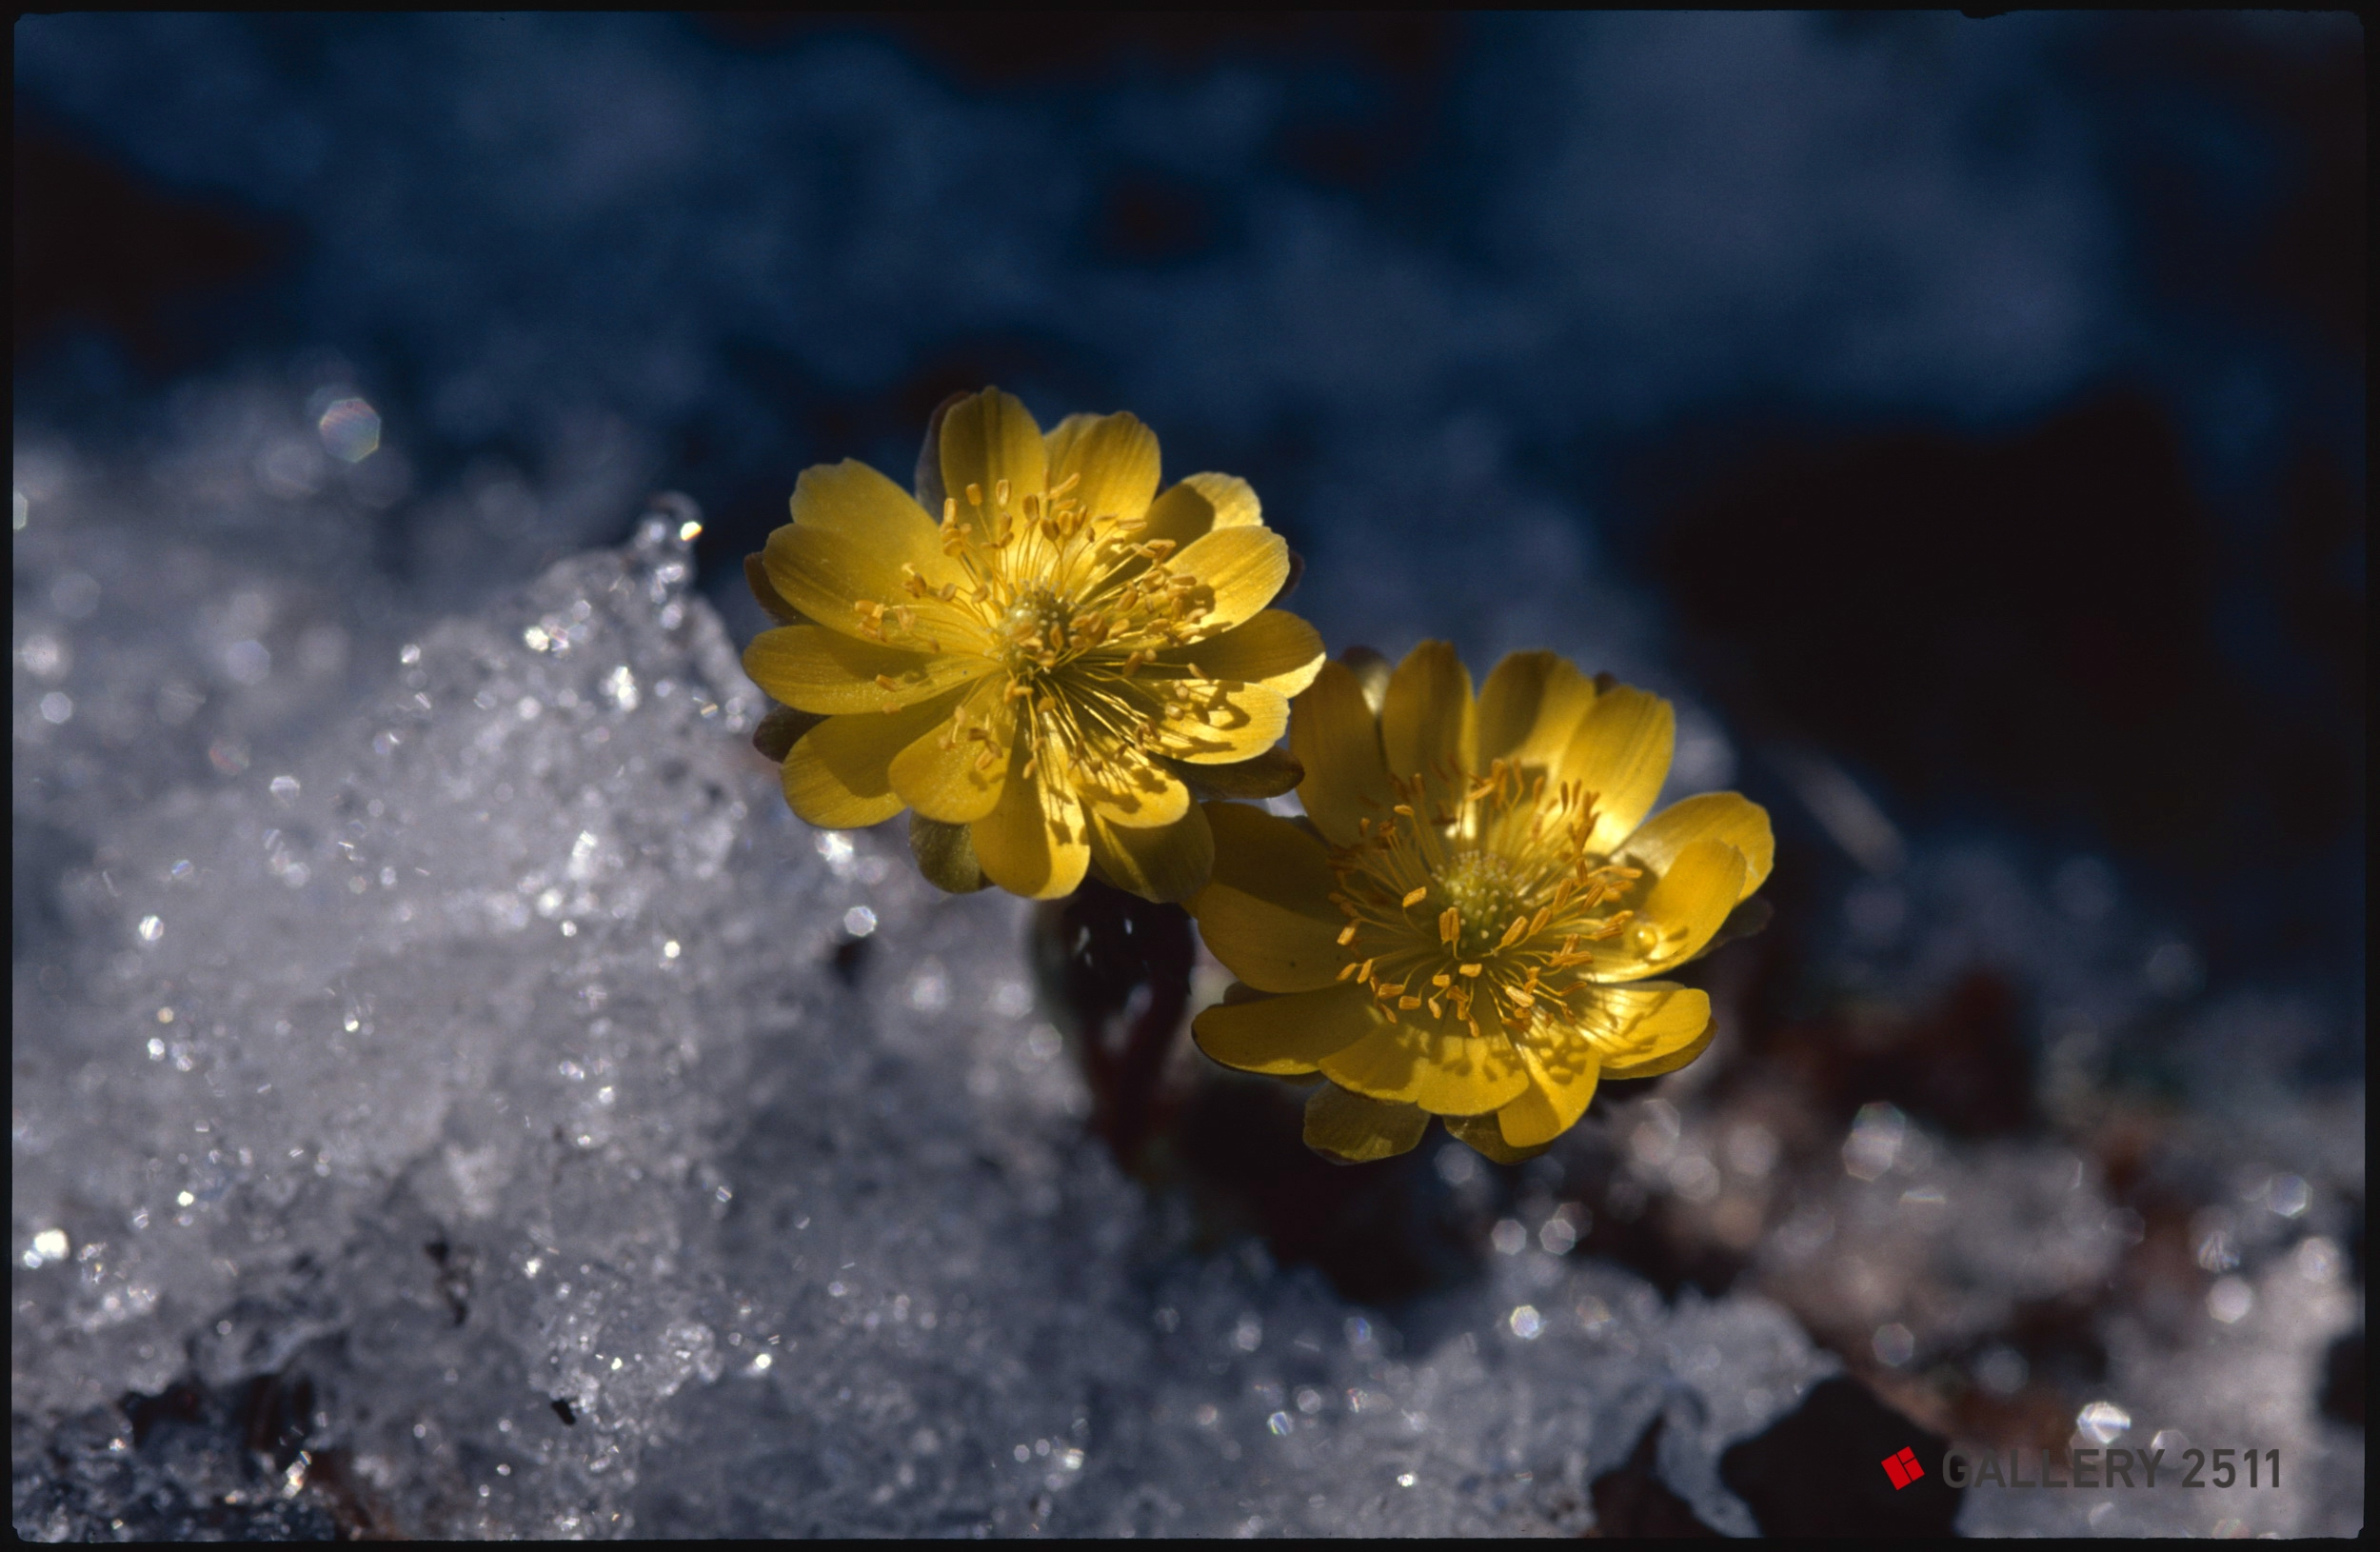 spring adonis in the snow